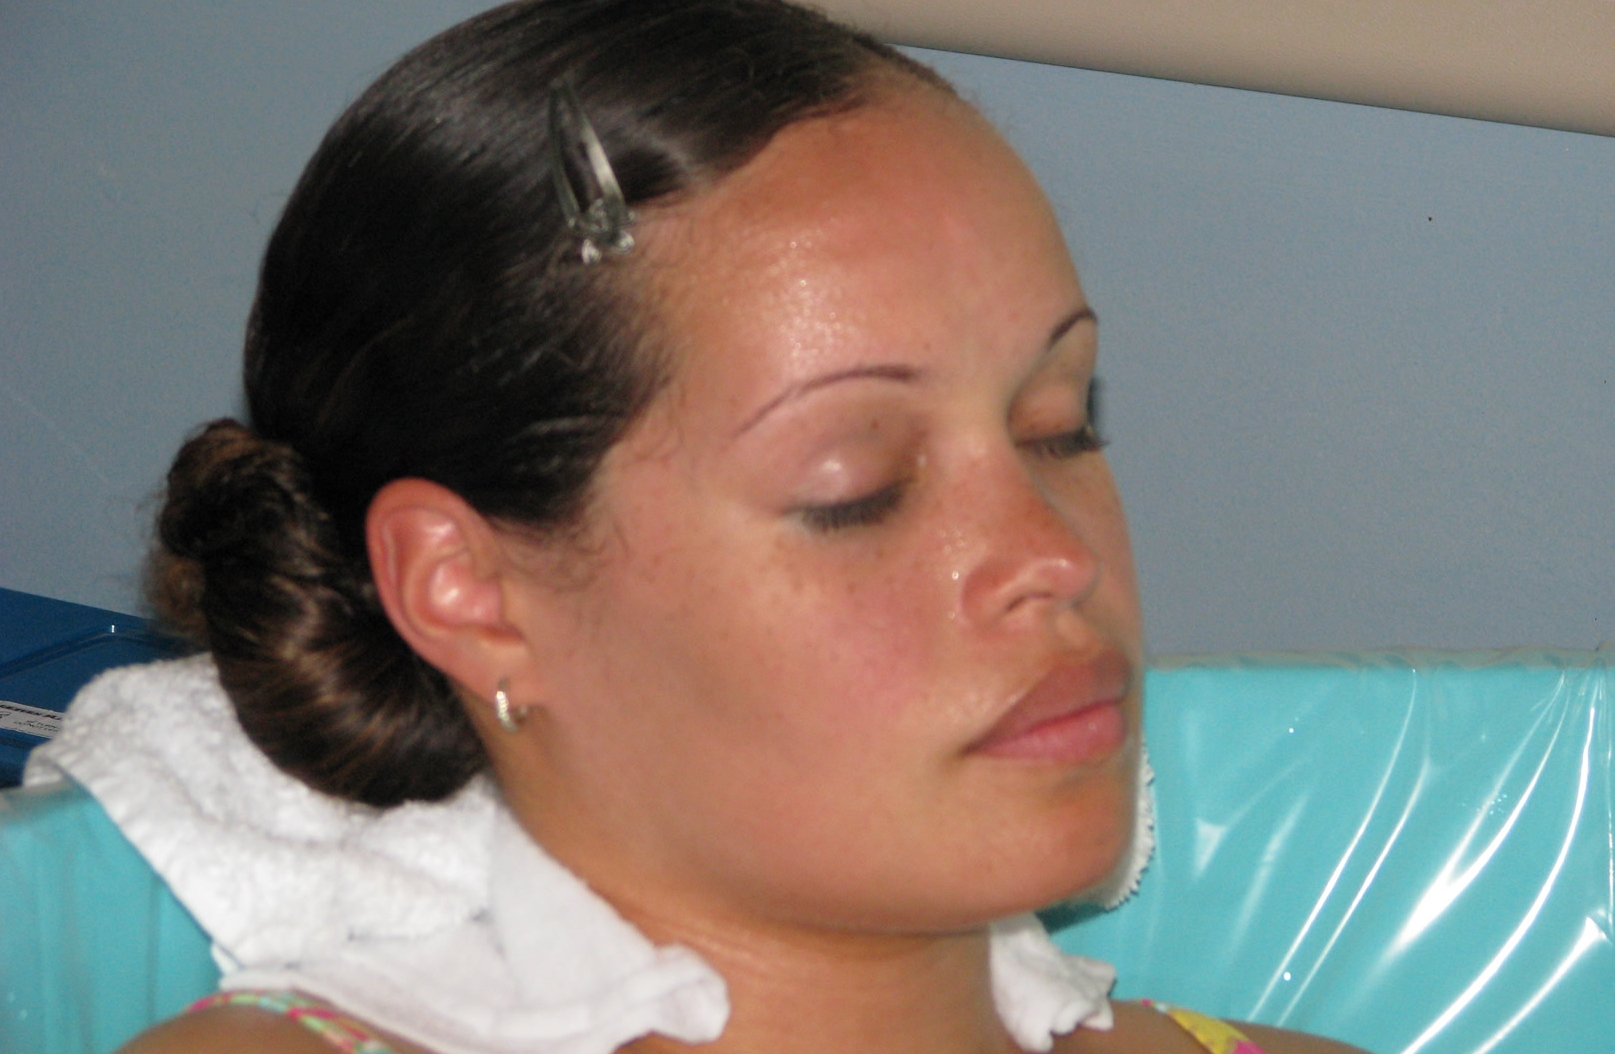 Water Birth can be safe and Calm